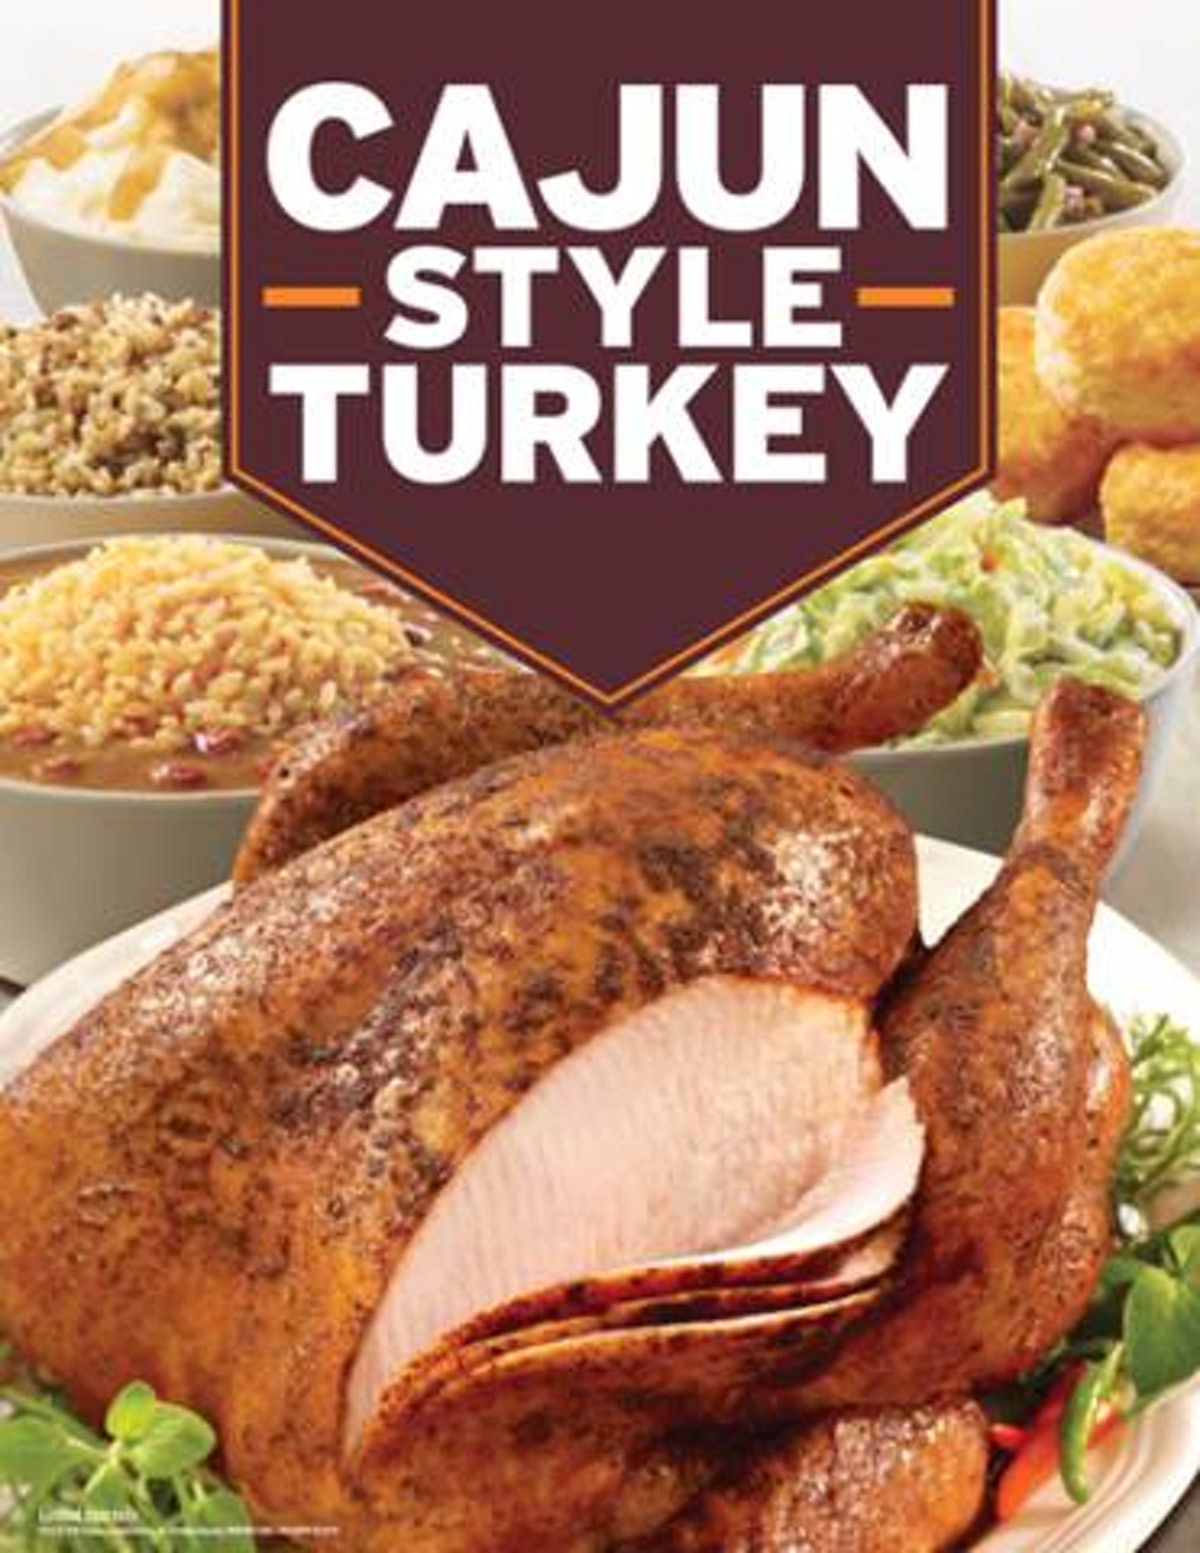 Here's How To Order Popeyes' Cajun Style Turkey so your thanksgiving holiday is easier.